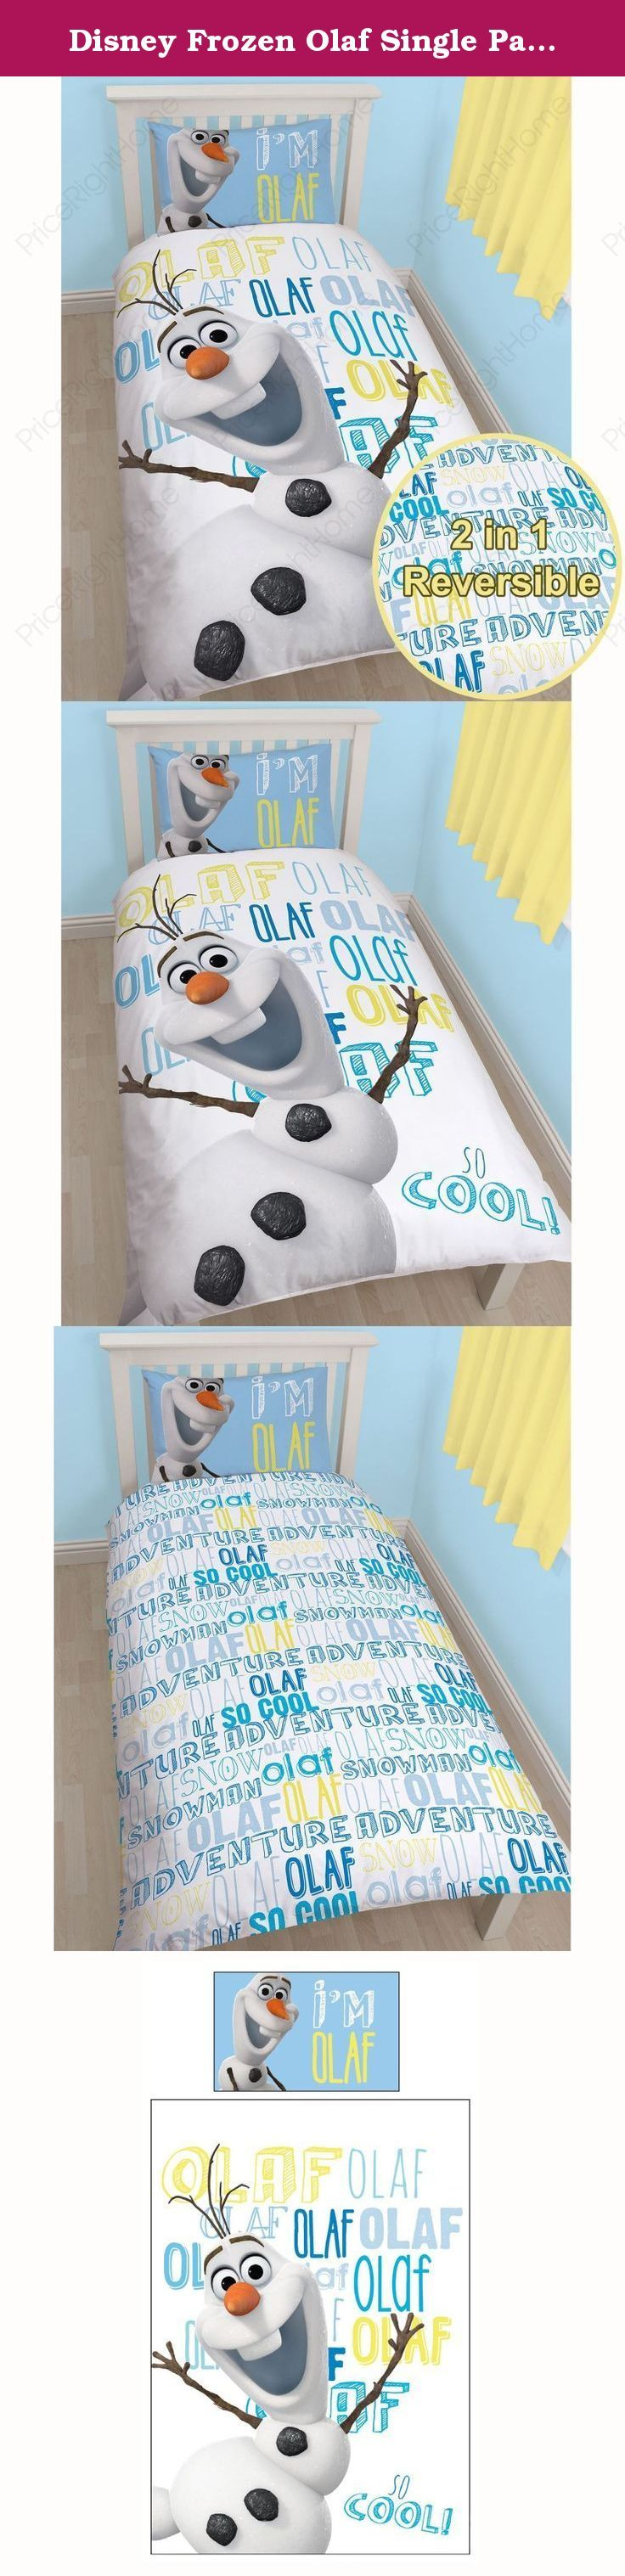 Disney Frozen Olaf Single Panel Duvet Cover and Pillowcase Set. This official bedding set is the latest offering from the ever popular Disney Frozen. The duvet cover design features a great image of the hilarious Olaf with his name written in different fonts in shades of blue and yellow. This item can be machine washed and tumble dried on a cool setting.Please note: Comforter and pillow not included.